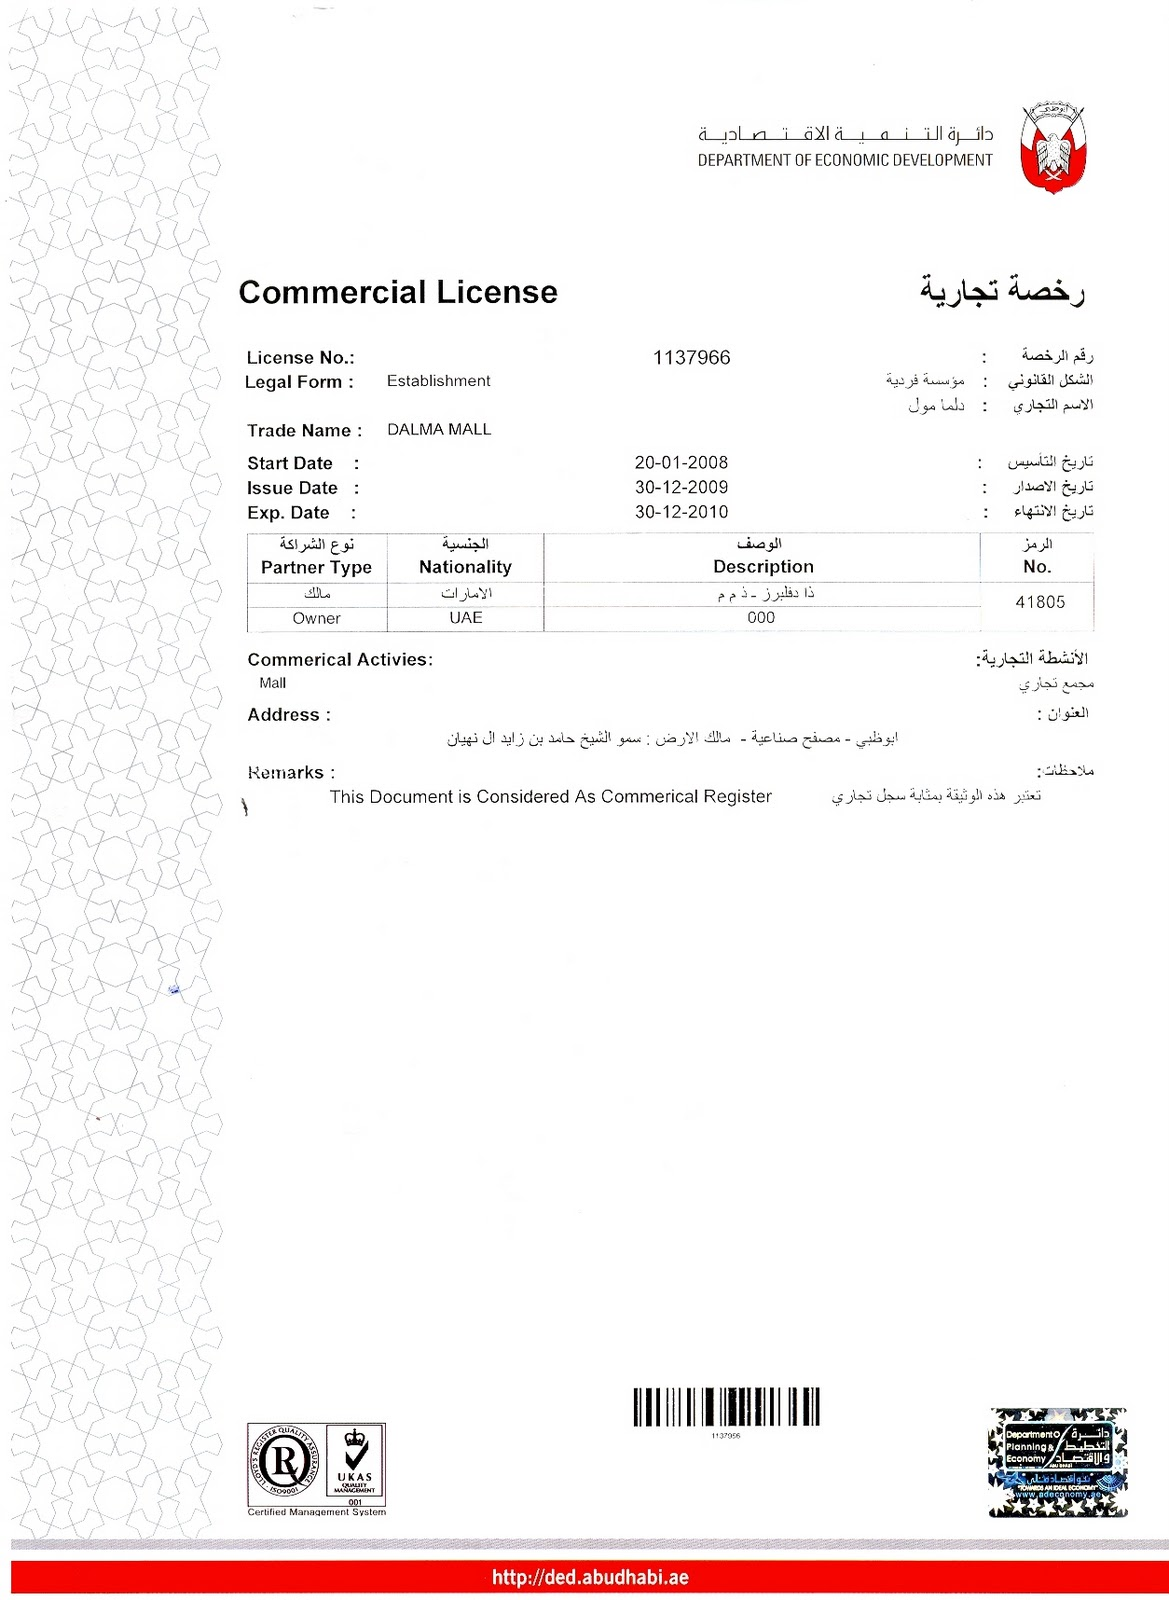 Ampere Electrical Contracting Est: APPROVAL Documentation